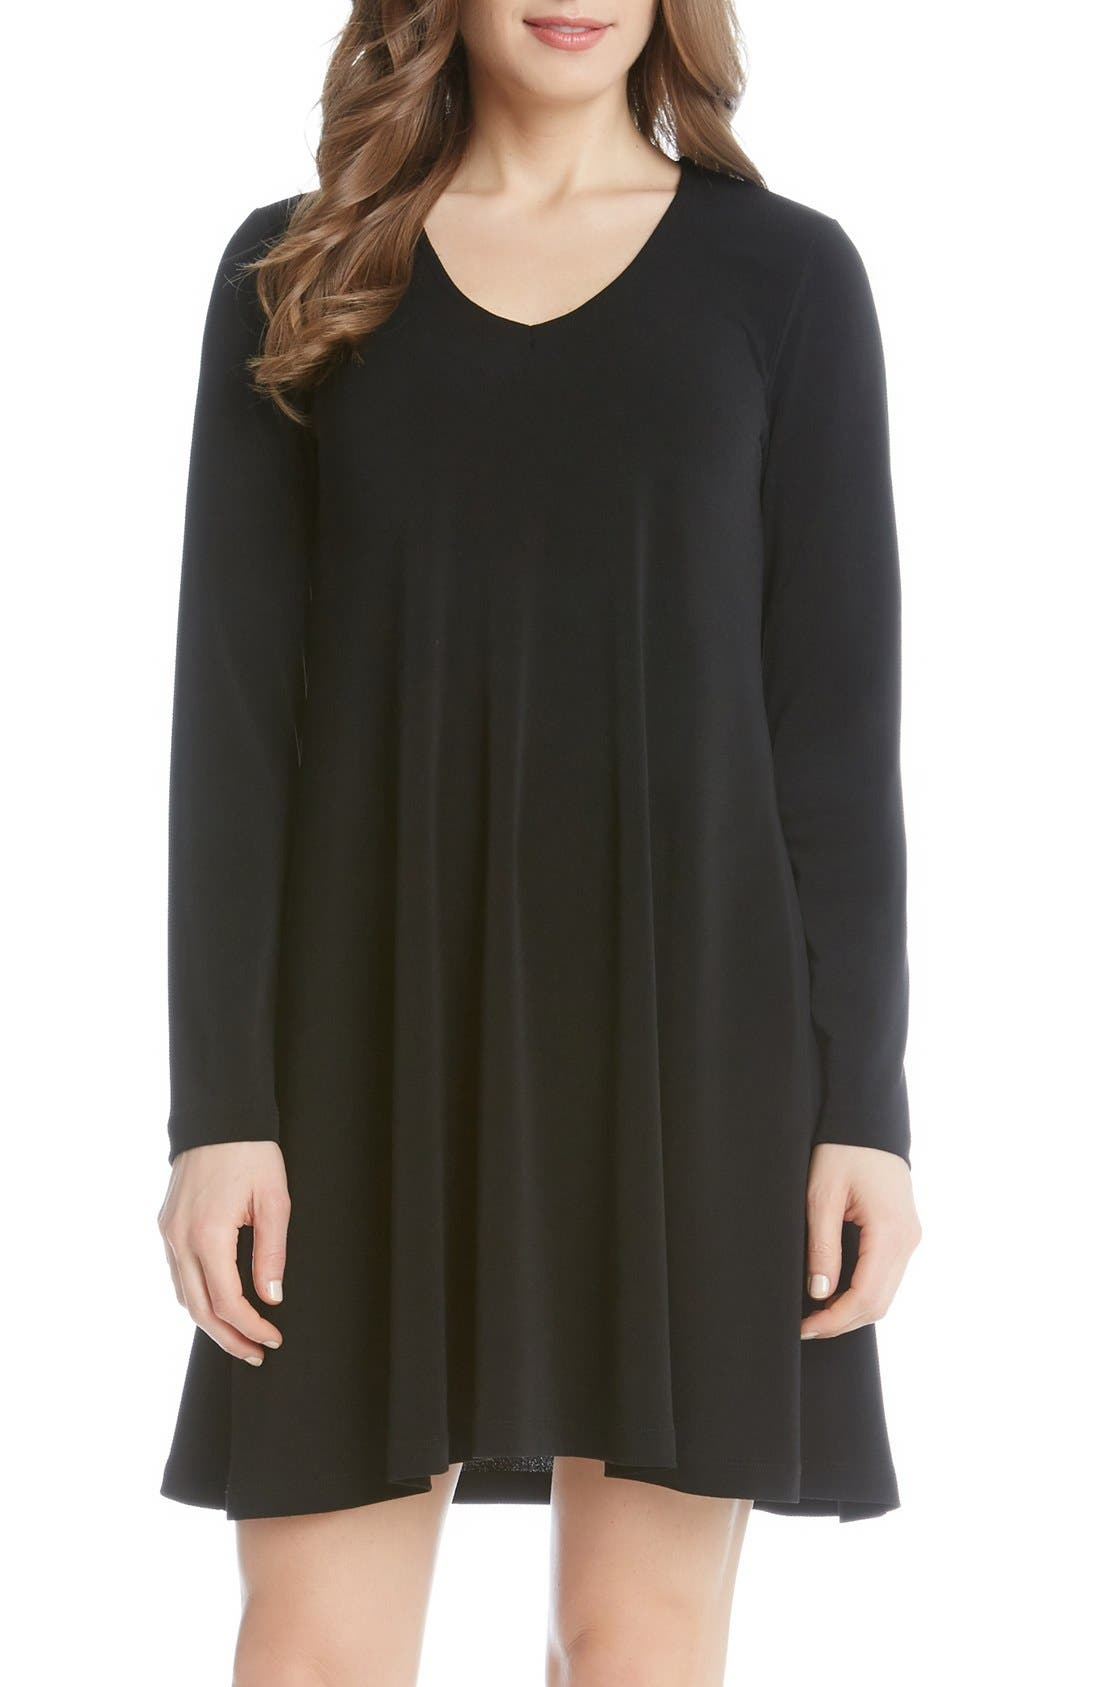 Alternate Image 1 Selected - Karen Kane 'Taylor' Long Sleeve A-Line Dress